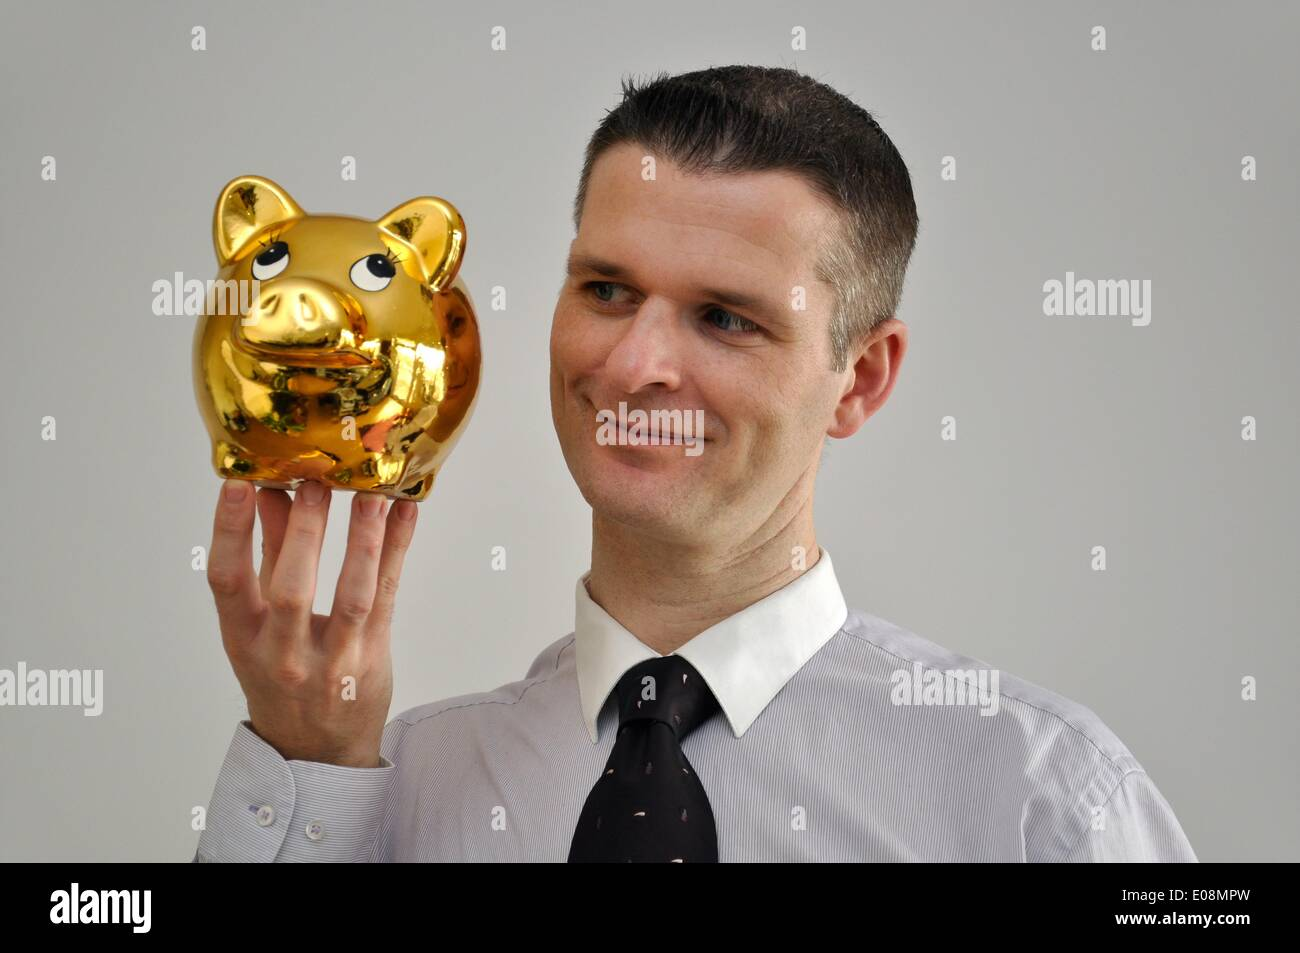 Illustration - A man holds a golden piggy bank in Germany, 27 February 2011. Photo: Berliner Verlag/Steinach - NO Stock Photo